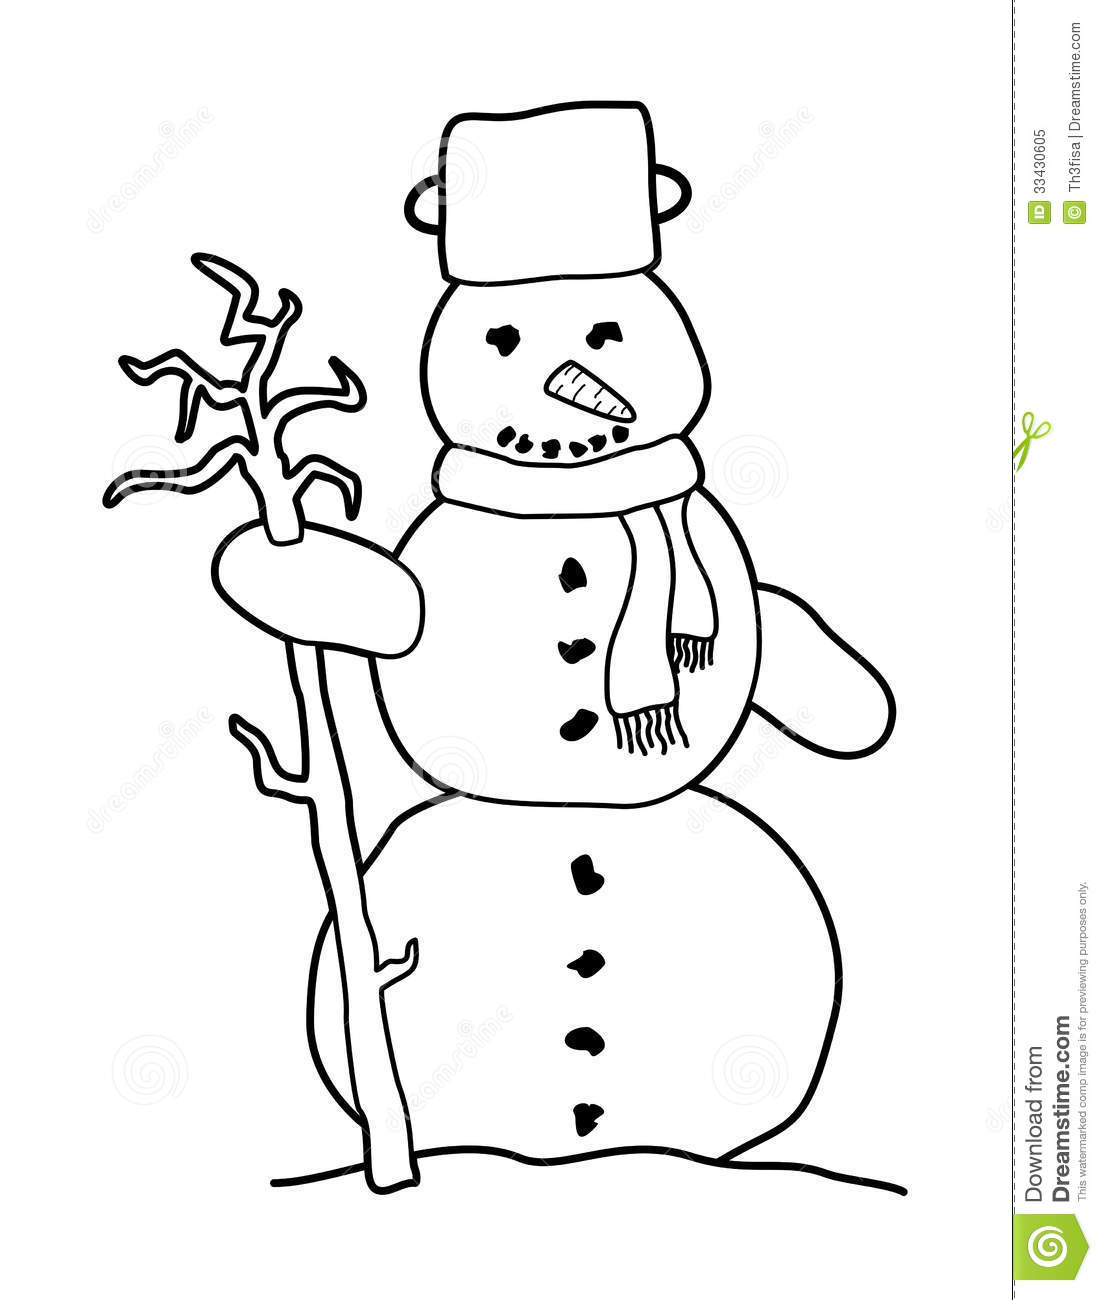 Black And White Cartoon Snowman Royalty Free Stock Photo